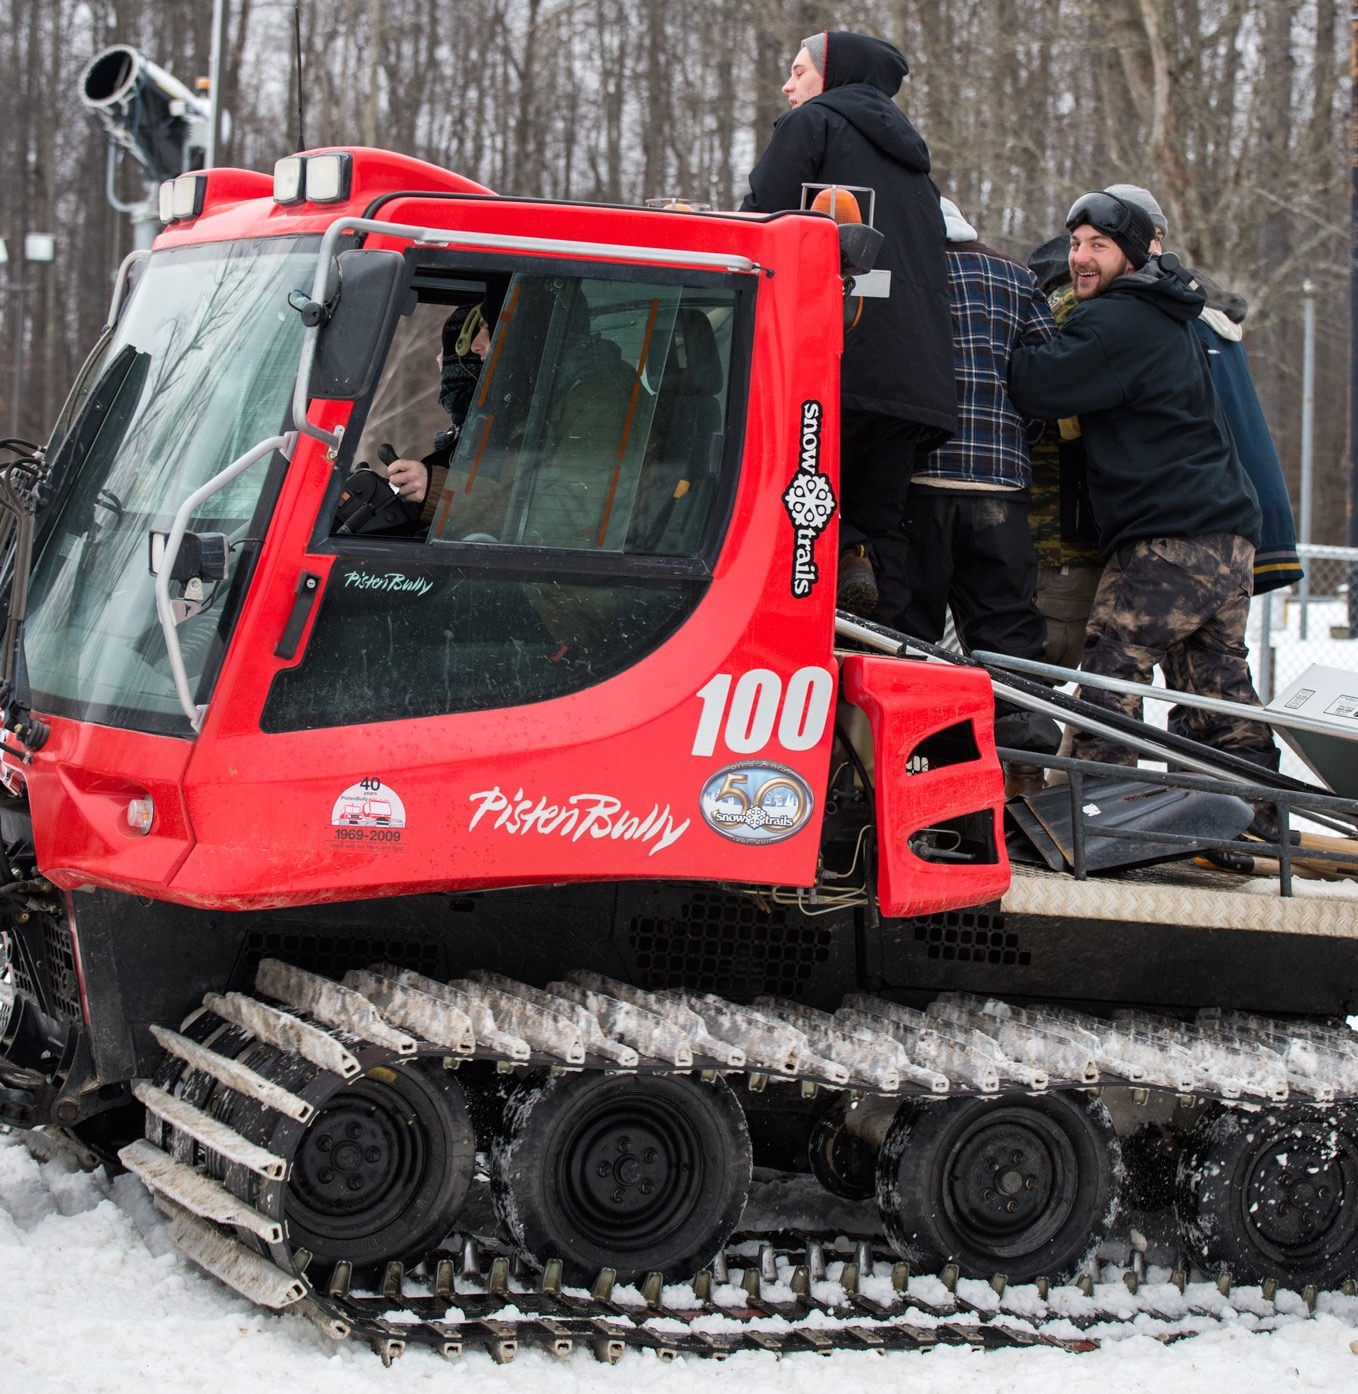 Pisten bully 100 for sale - The Woods Terrain Park Opens Thurs 4pm